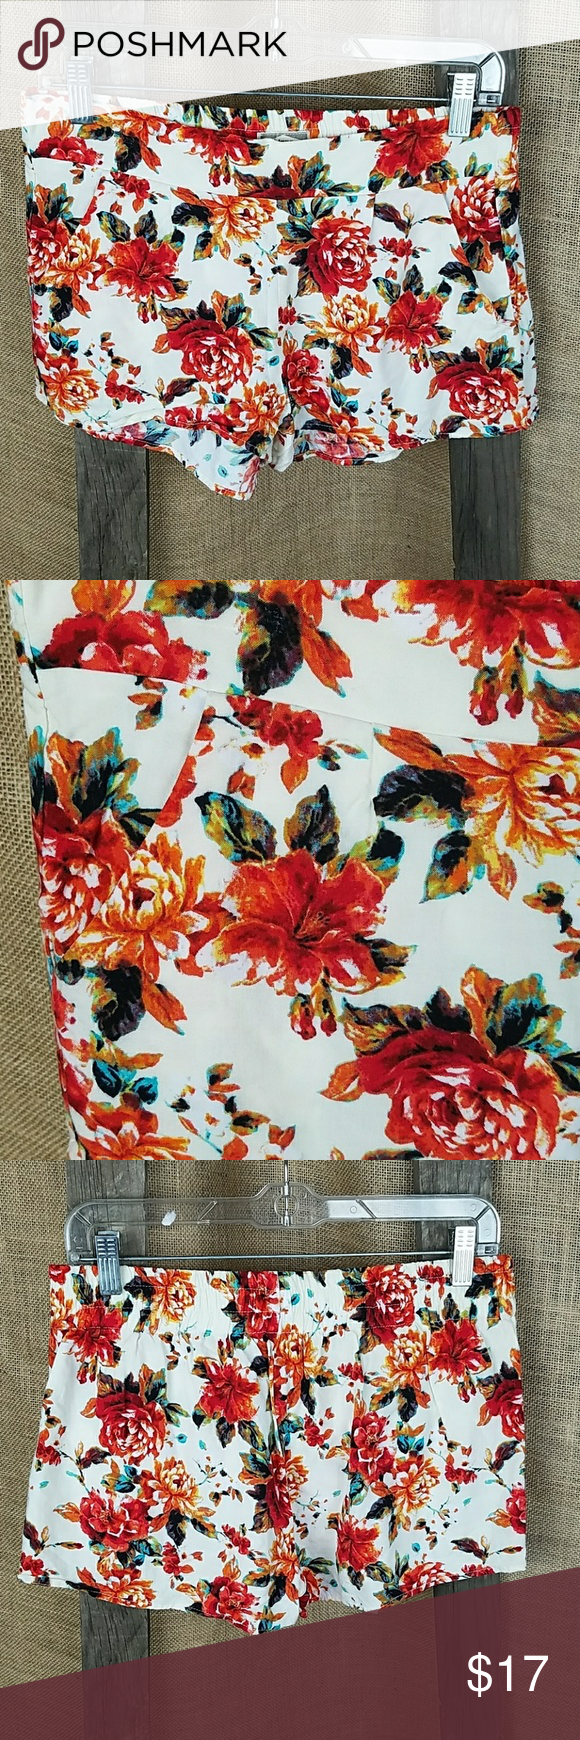 """Urban Outfitters KIRRA M rose floral summer shorts Urban Outfitters KIRRA M rose floral summer shorts with pockets.  Waist side to side: 15.5"""" Length: 11.5"""" Urban Outfitters Shorts"""